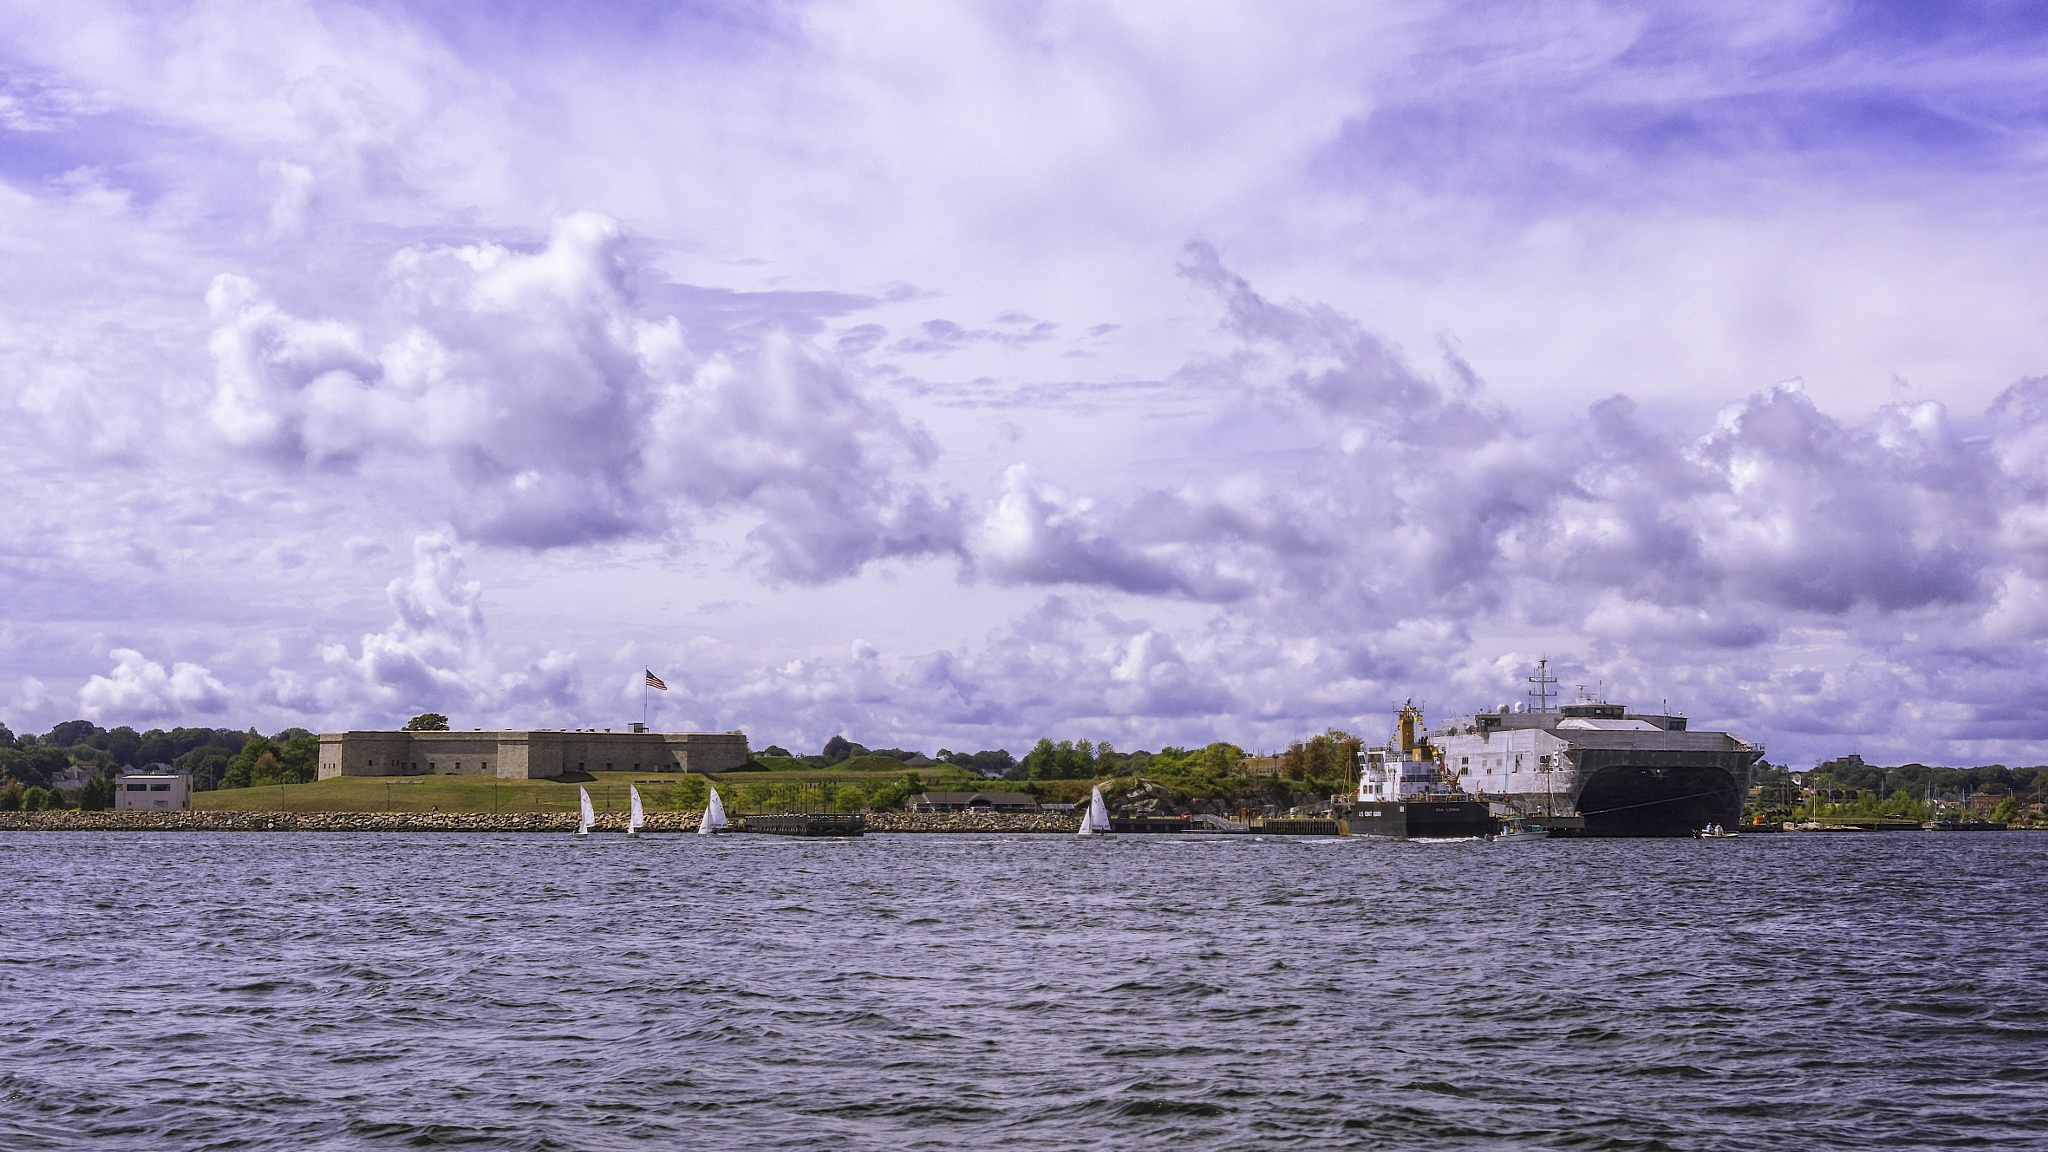 Dockside At Fort Trumbull by JoeGeraci